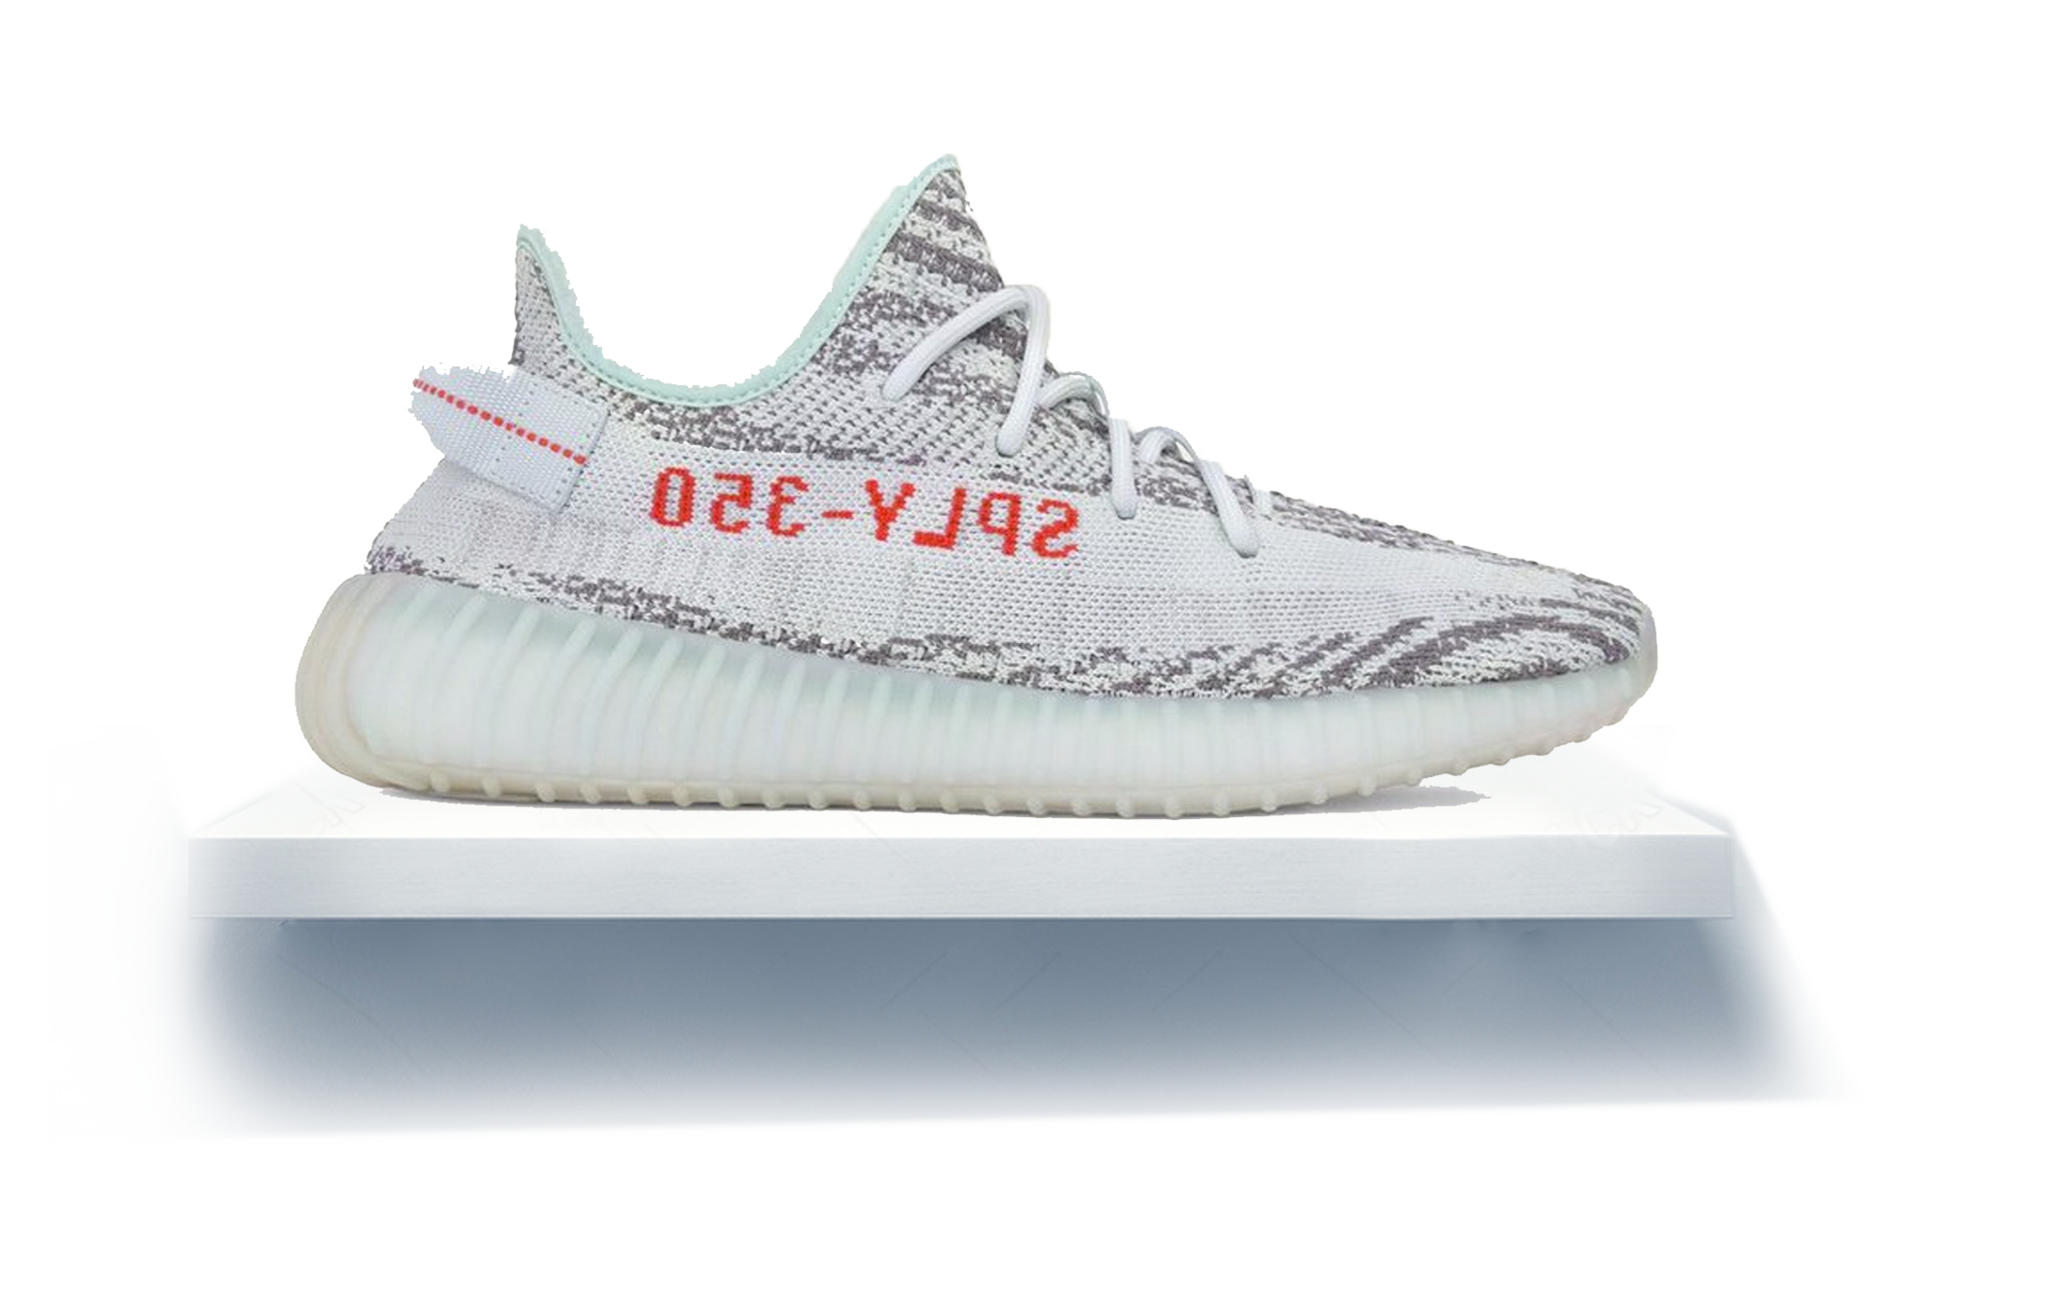 Yeezys transparent 2.0 white. Yeezy boost blue tint